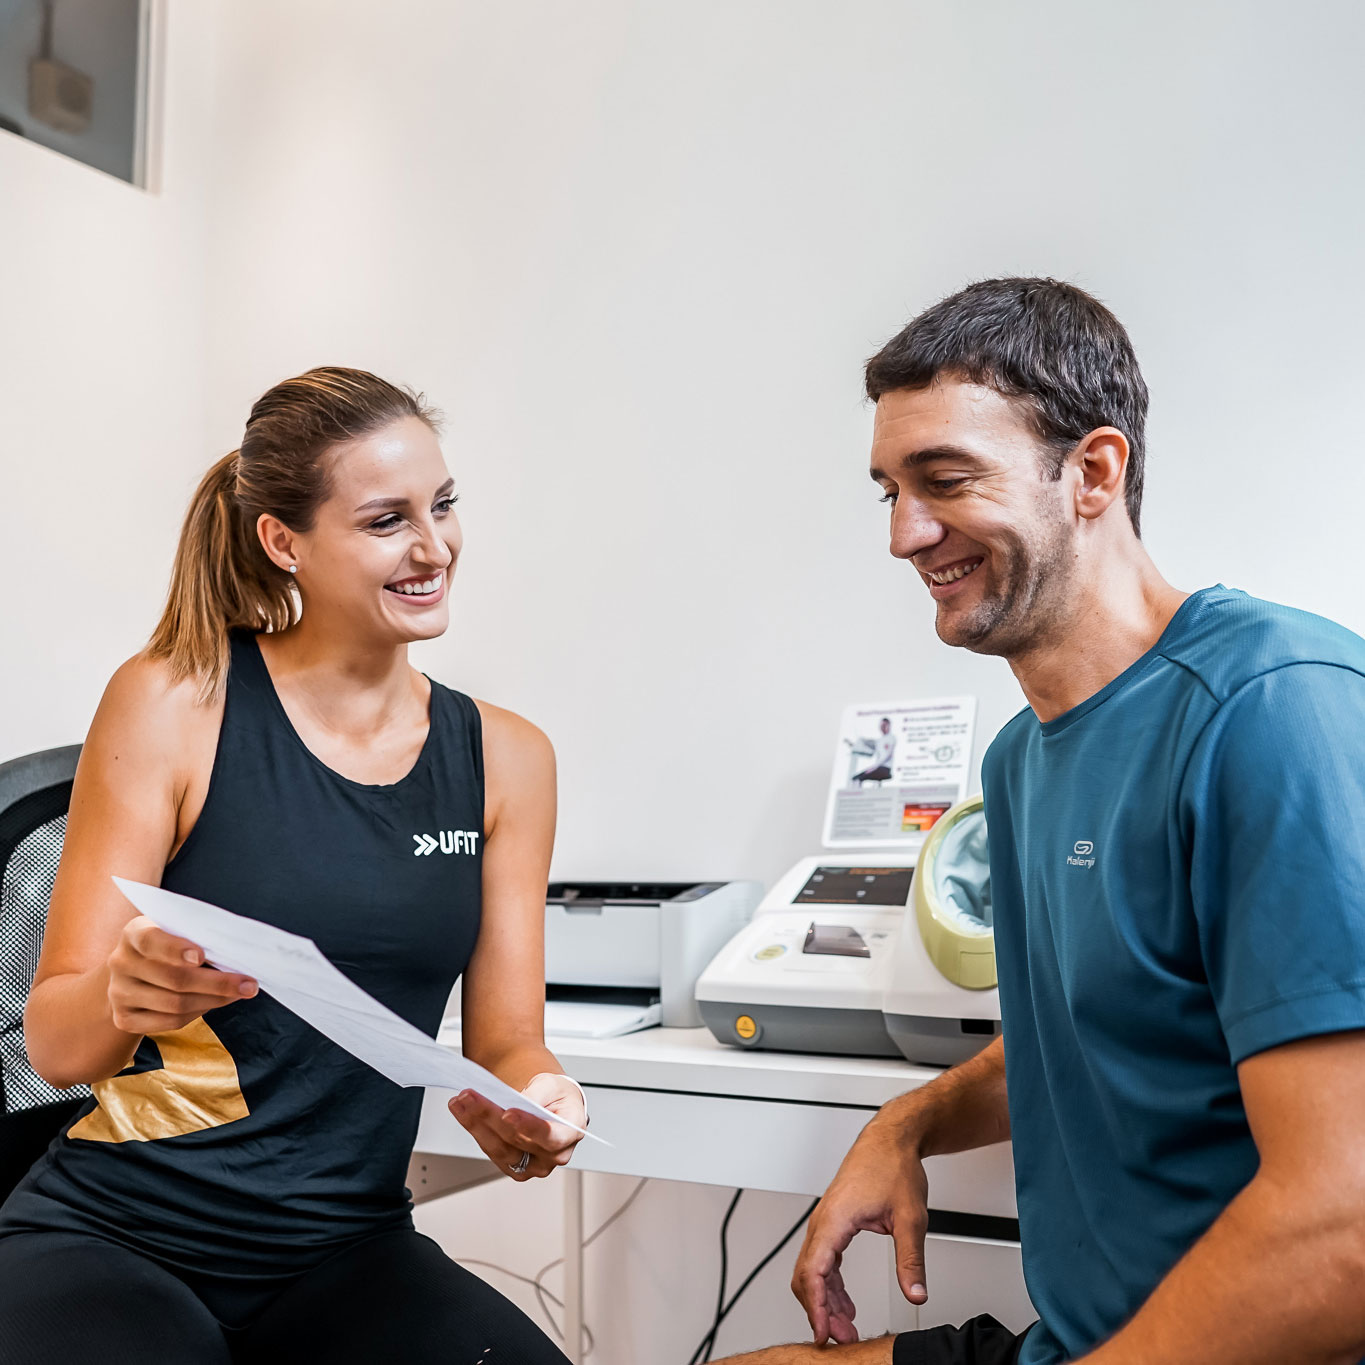 Woman with health analysis report and client